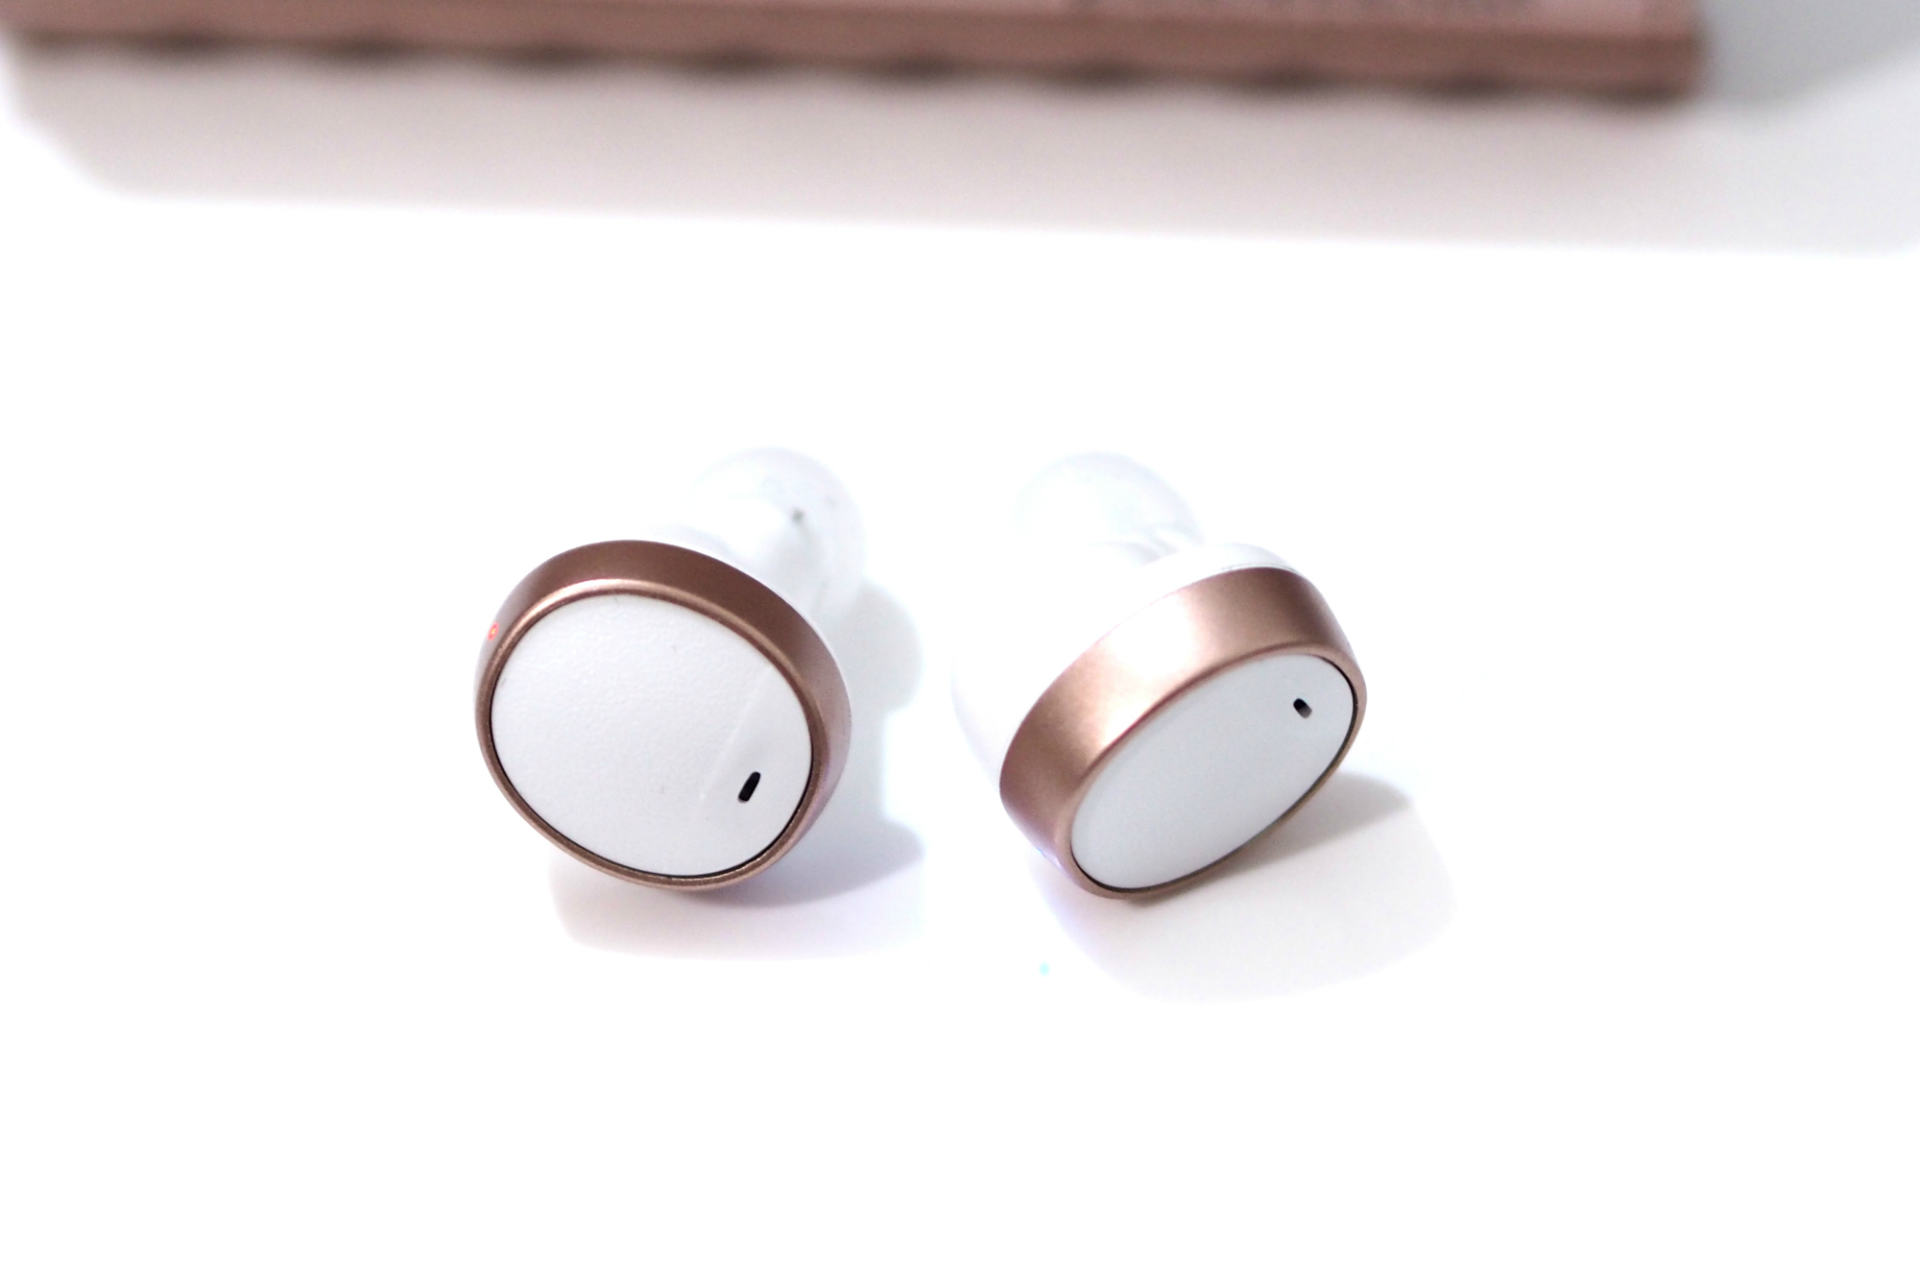 Close up of the white and rose gold earphones